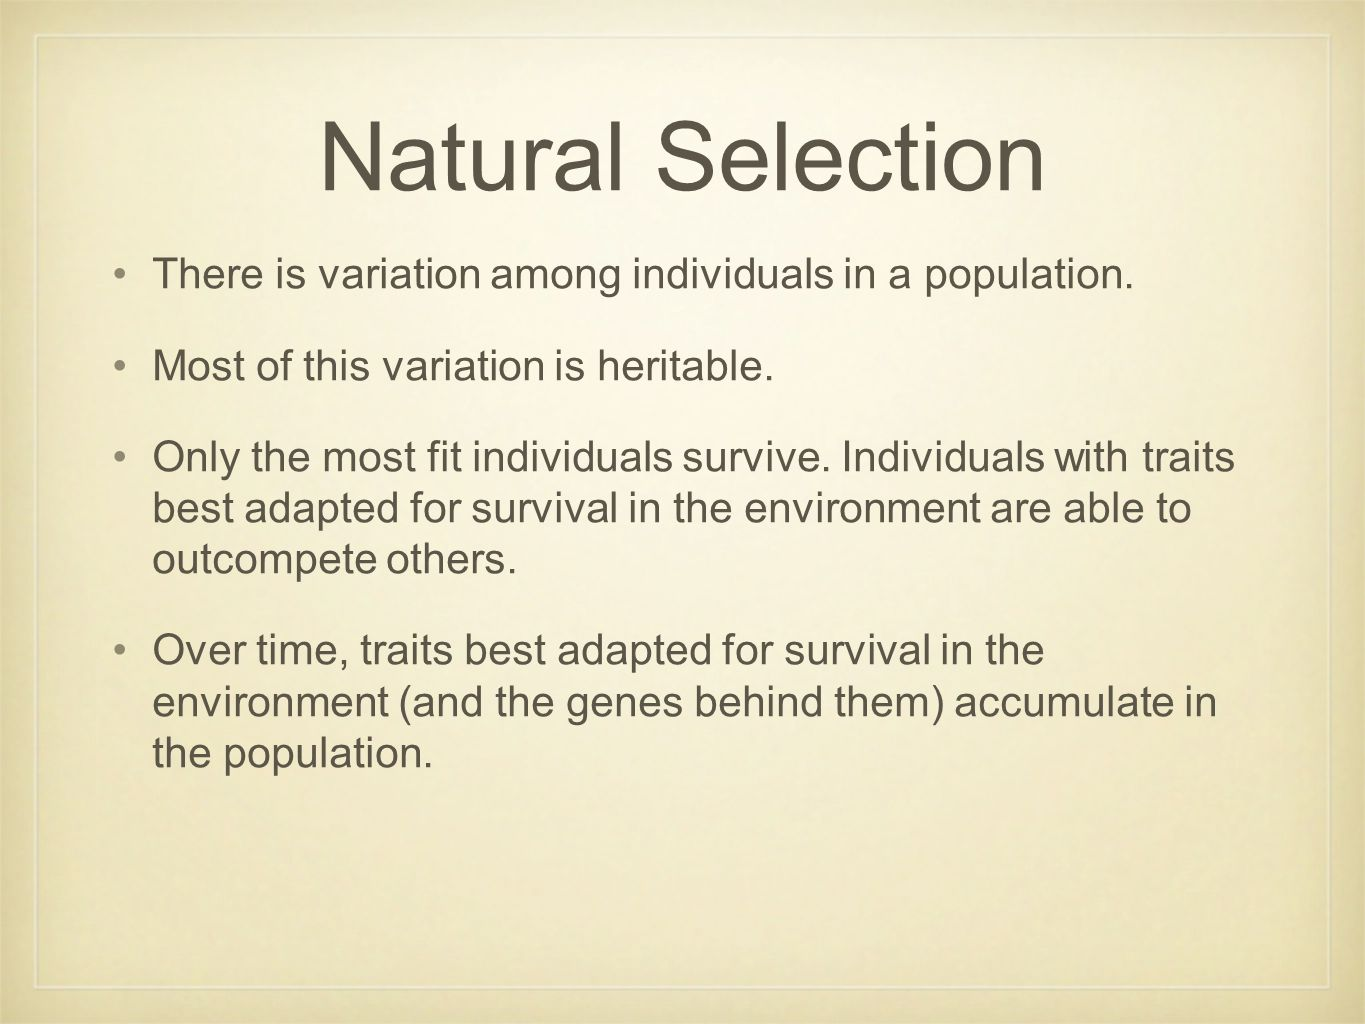 Natural Selection There is variation among individuals in a population. Most of this variation is heritable. Only the most fit individuals survive. In